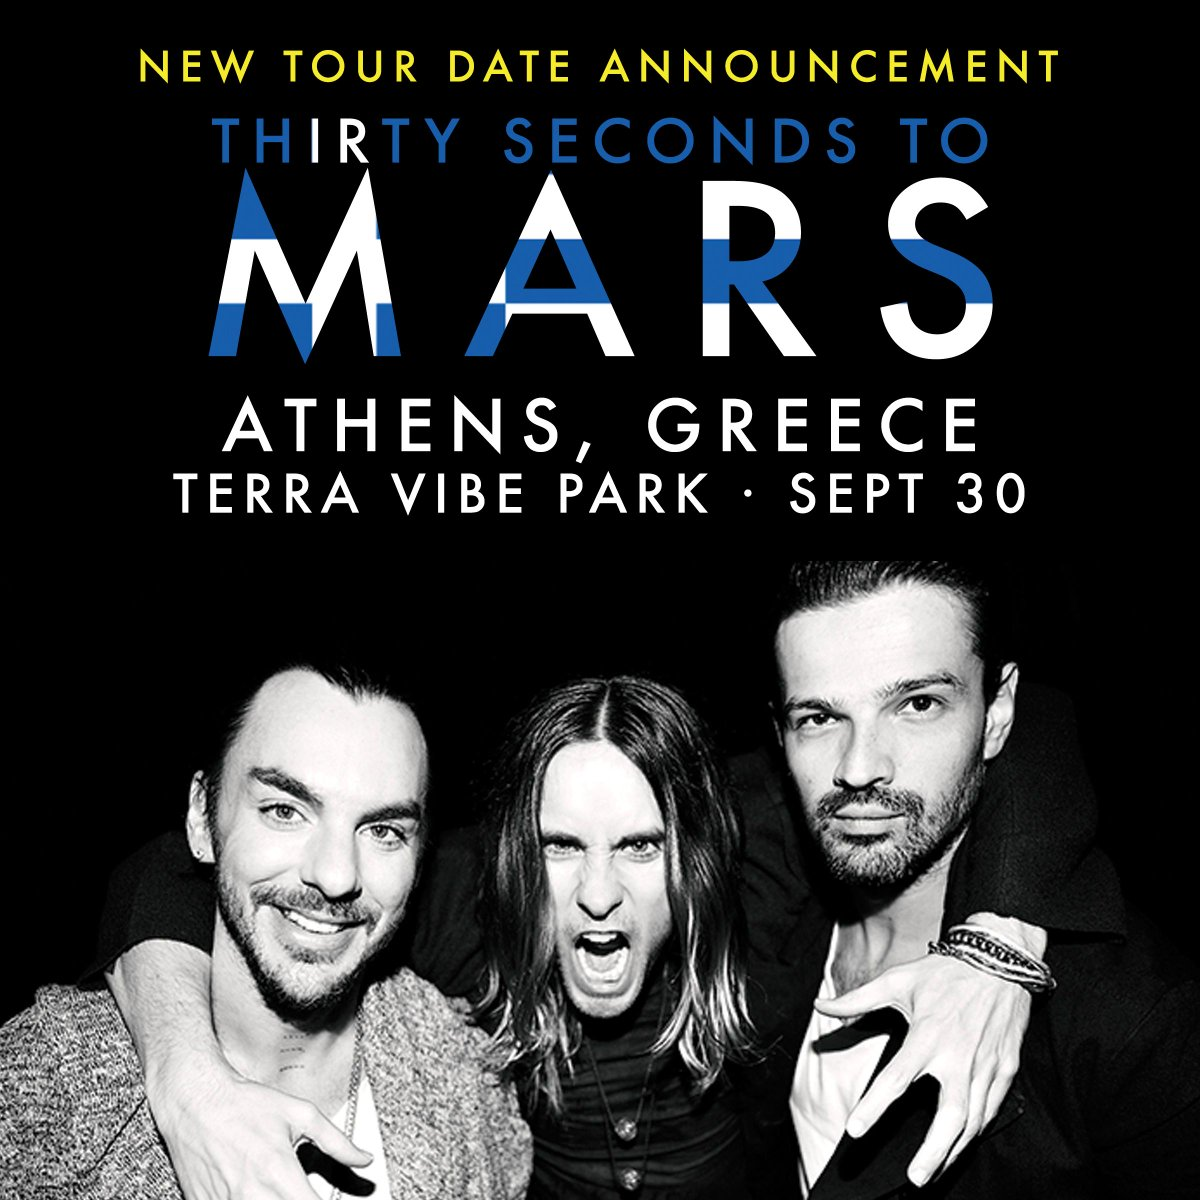 RT @30SECONDSTOMARS: NEWSFLASH: MARS IS COMING TO ATHENS, GREECE SEPT 30! Tix on sale JUNE 5 10:00 local time! → https://t.co/A3Vn5XRfyw ht…